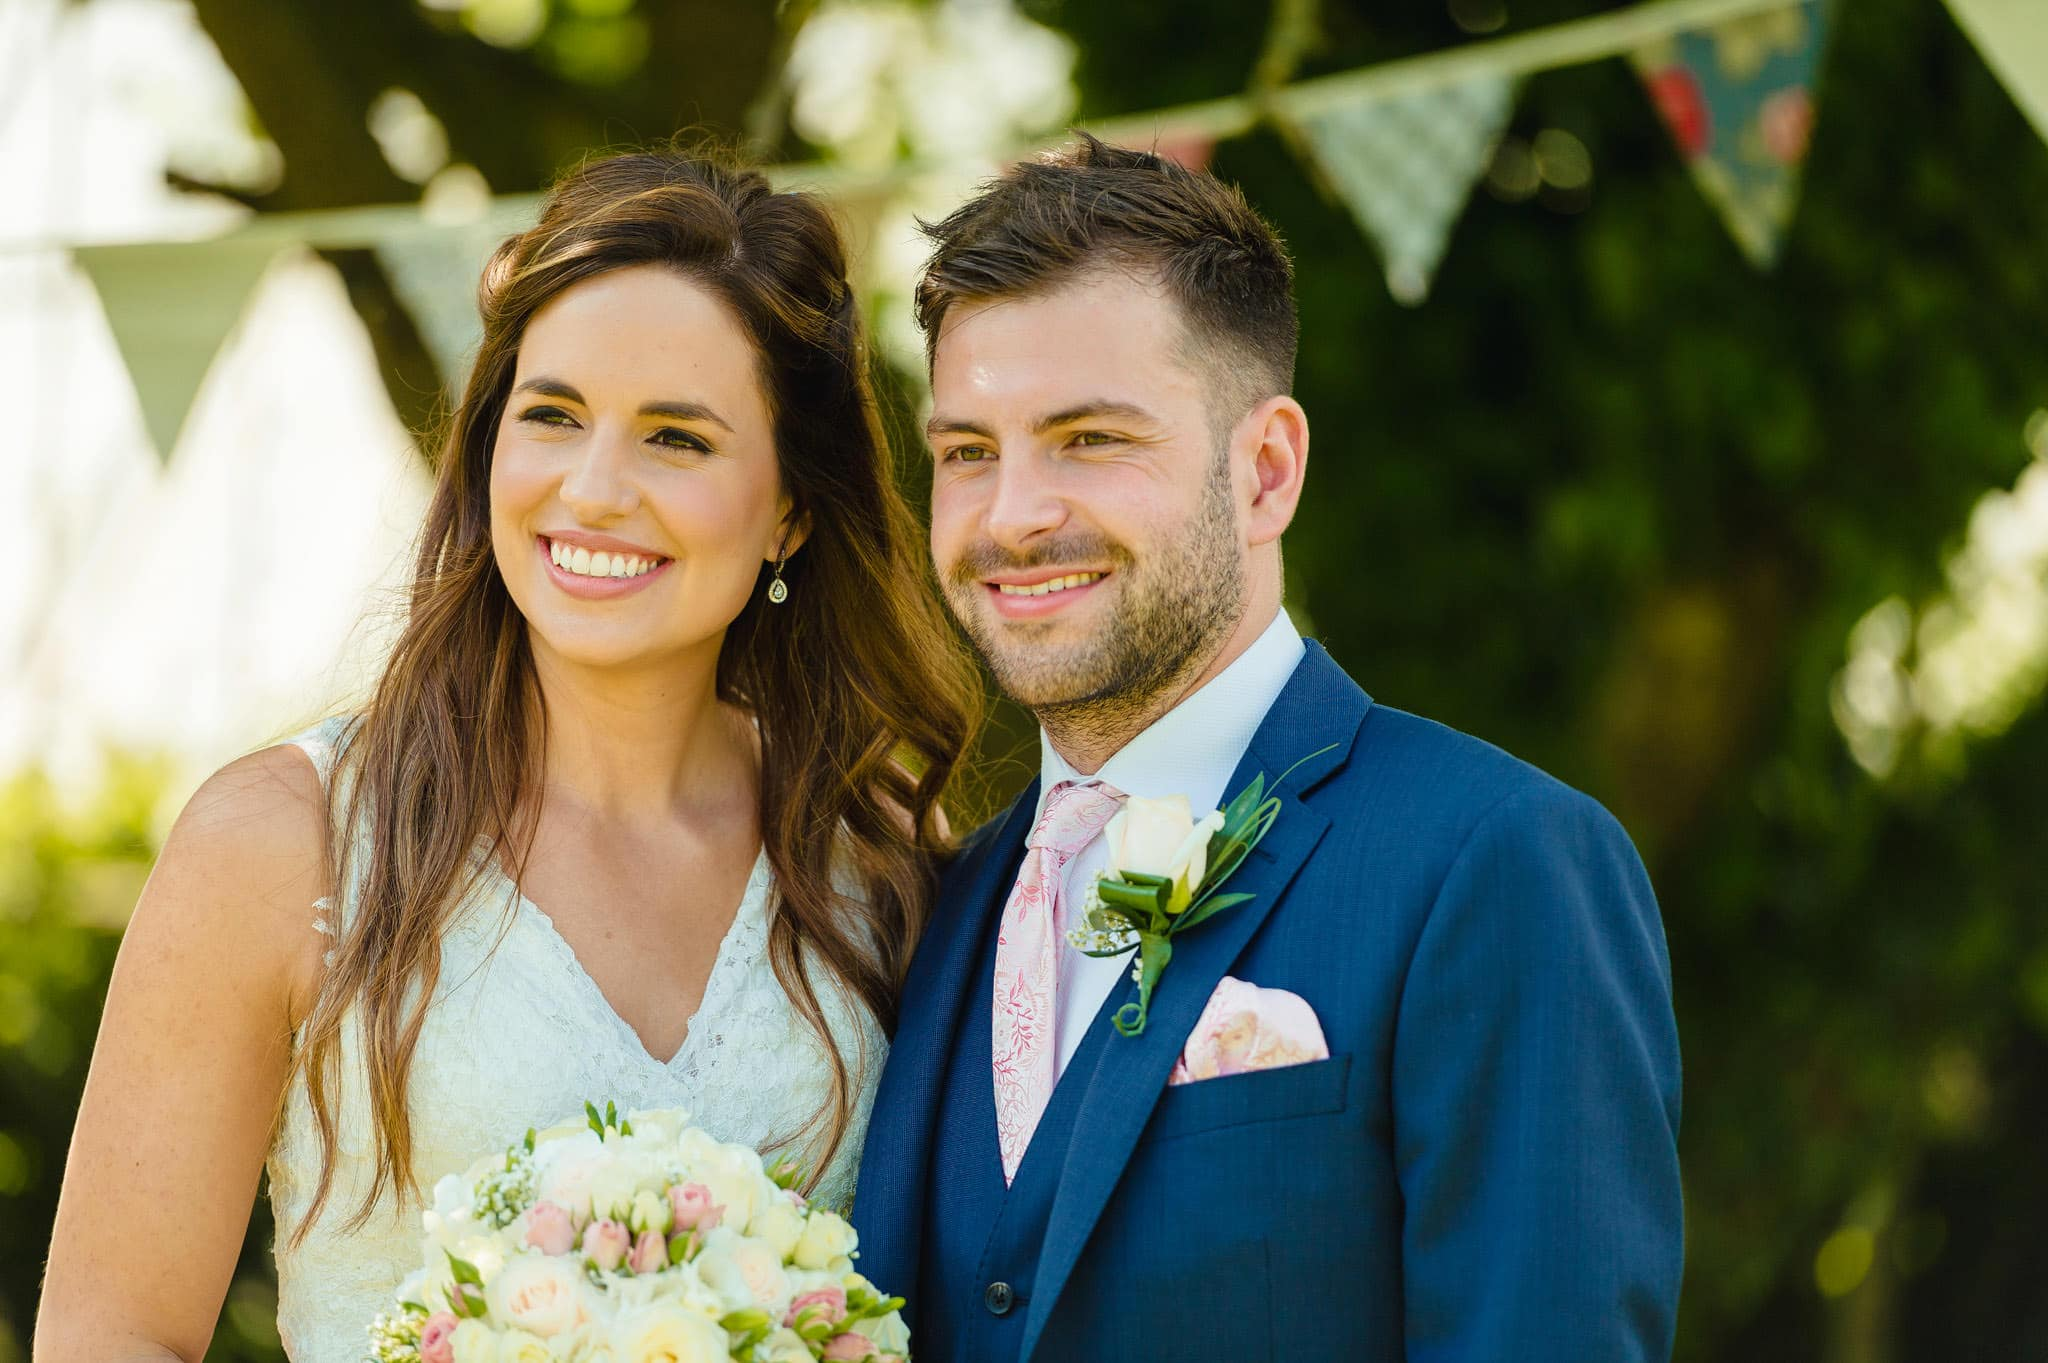 Wedding at Redhouse Barn in Stoke Prior, Worcestershire 111